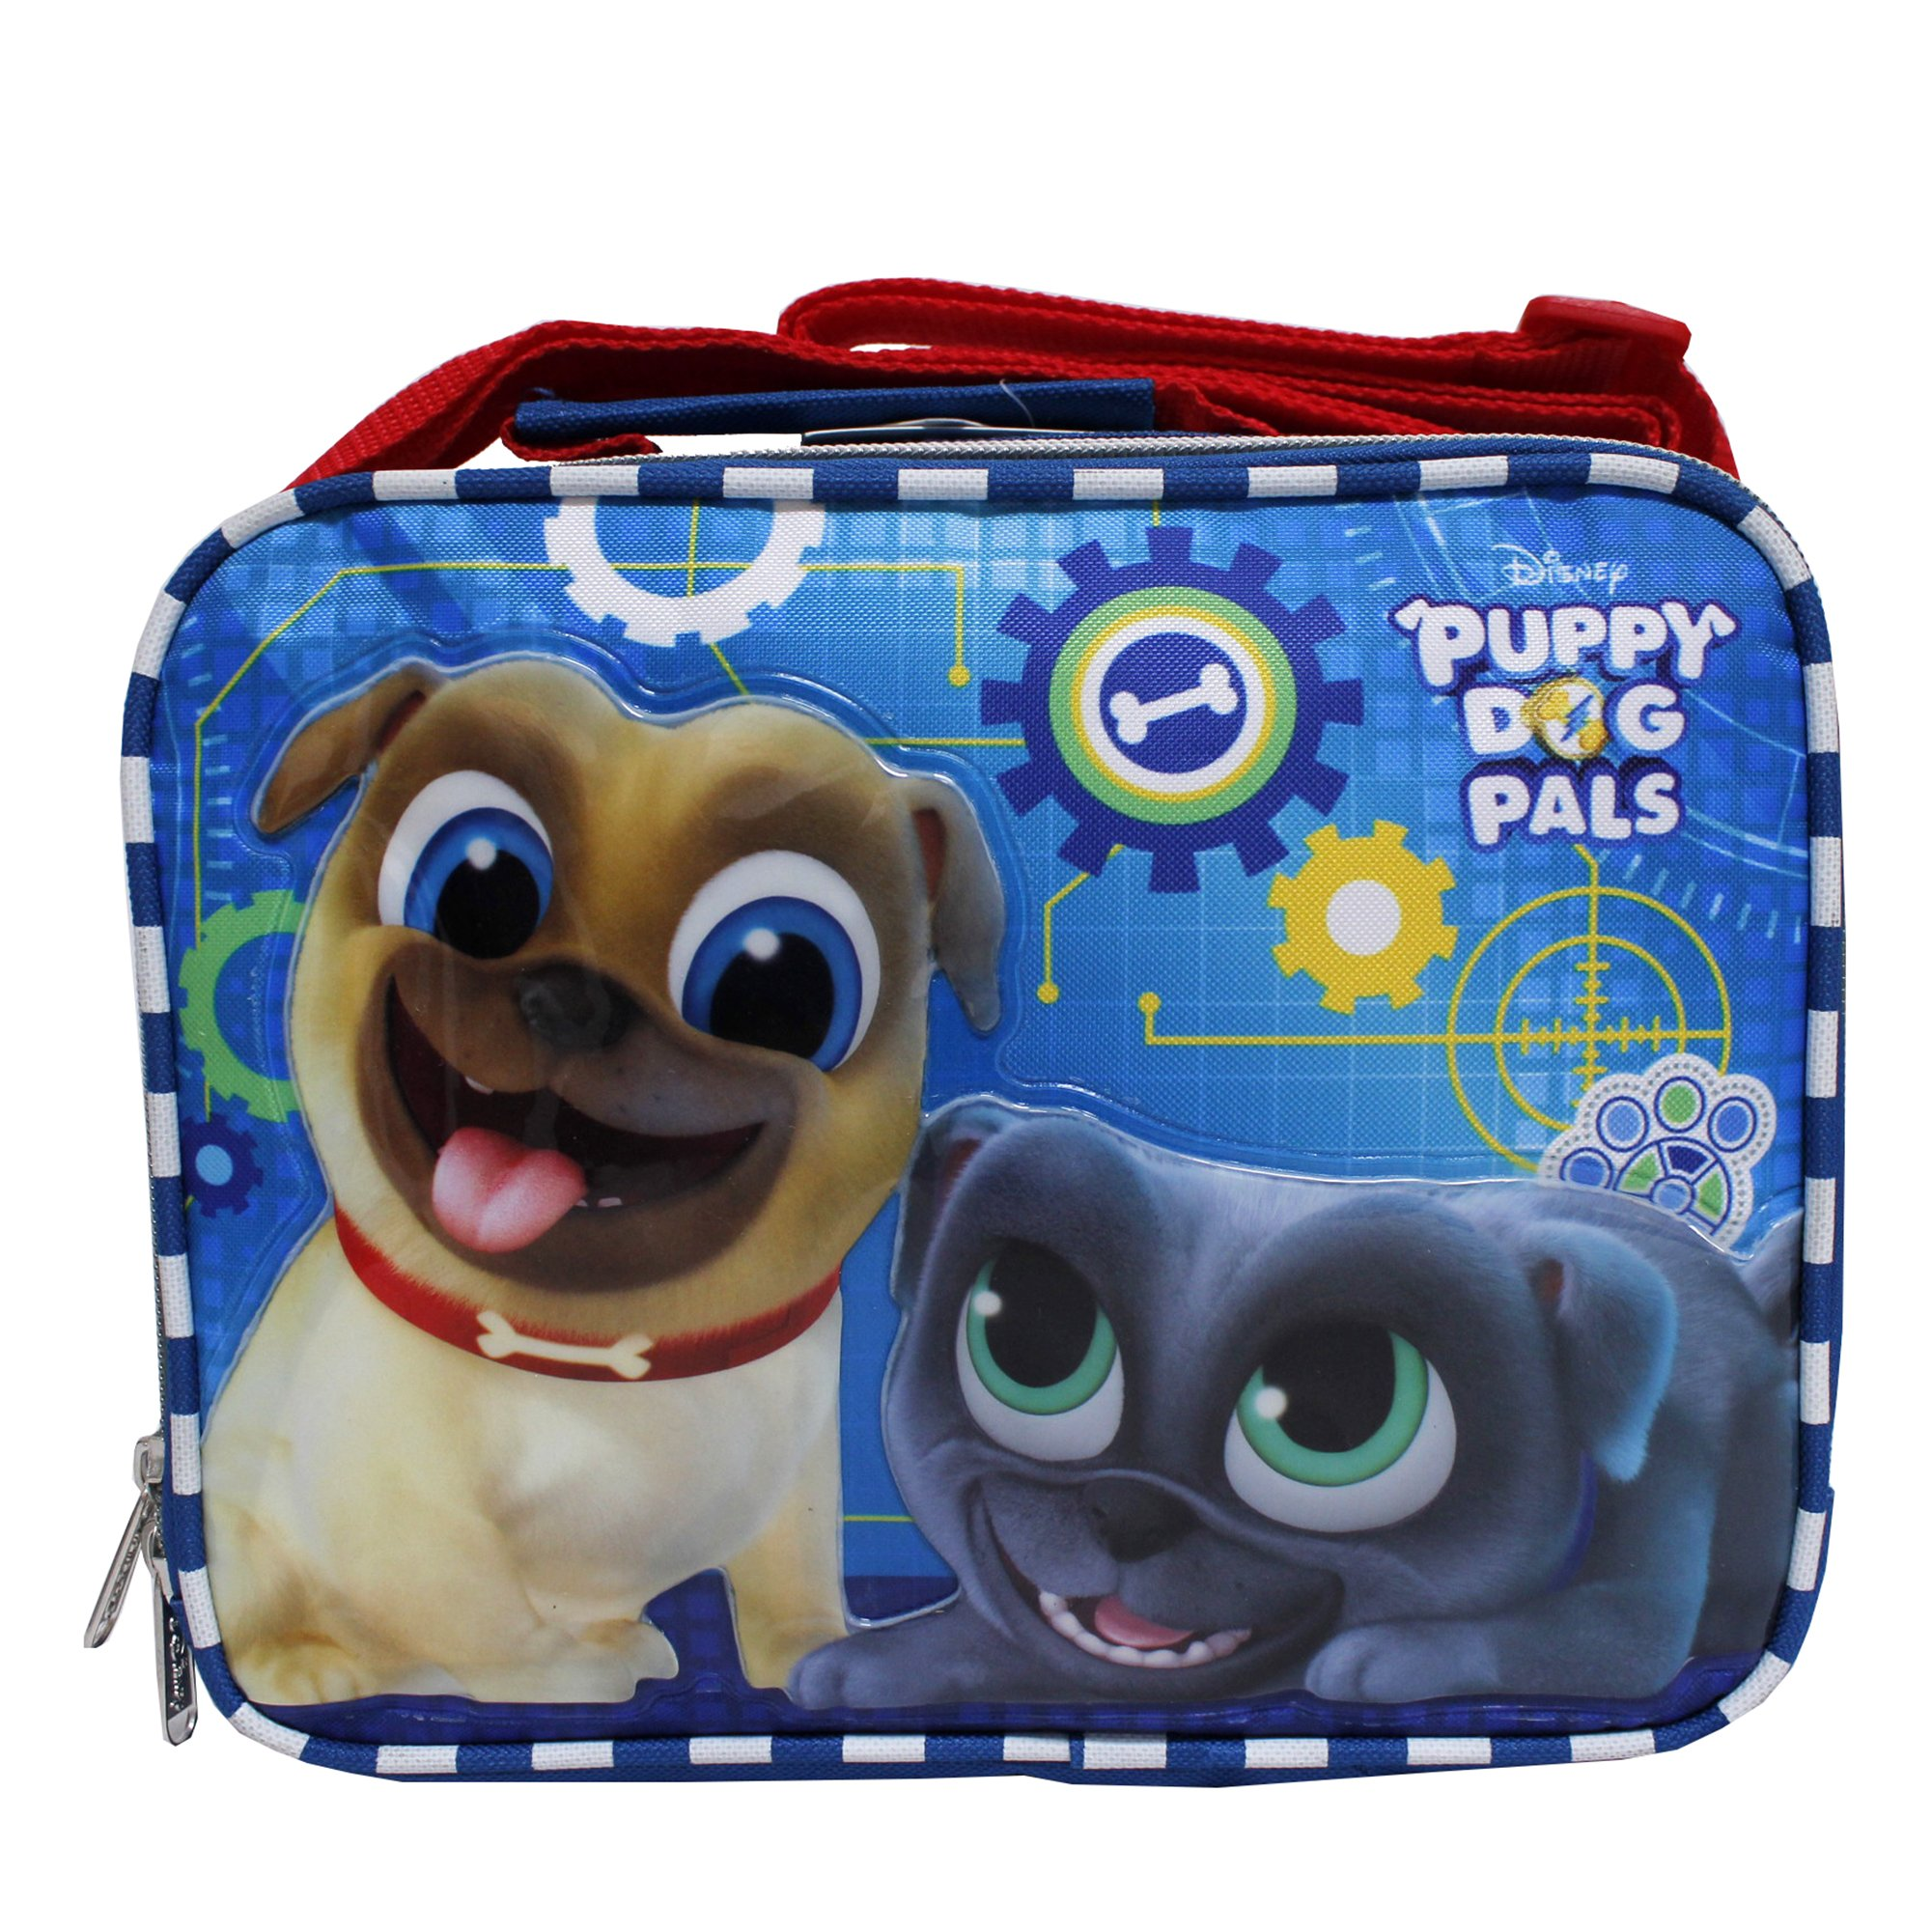 Disney Puppy Dog Pals Blue Insulated Children's School Lunch Bag- Rolly & Bingo by Ruz